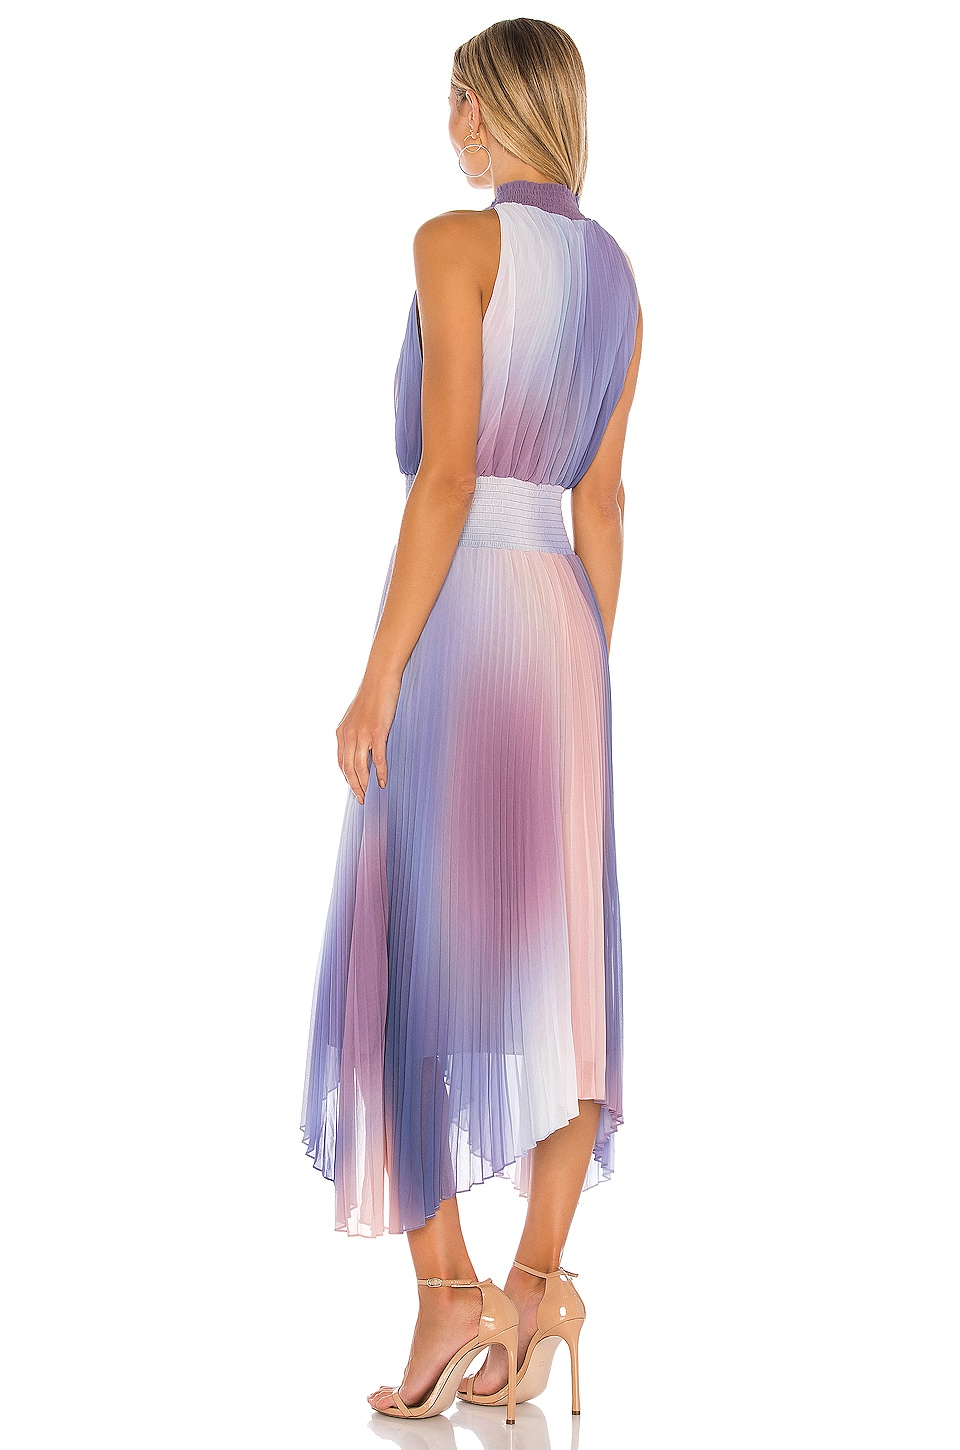 Halter Neck Pleated Midi Dress, view 3, click to view large image.